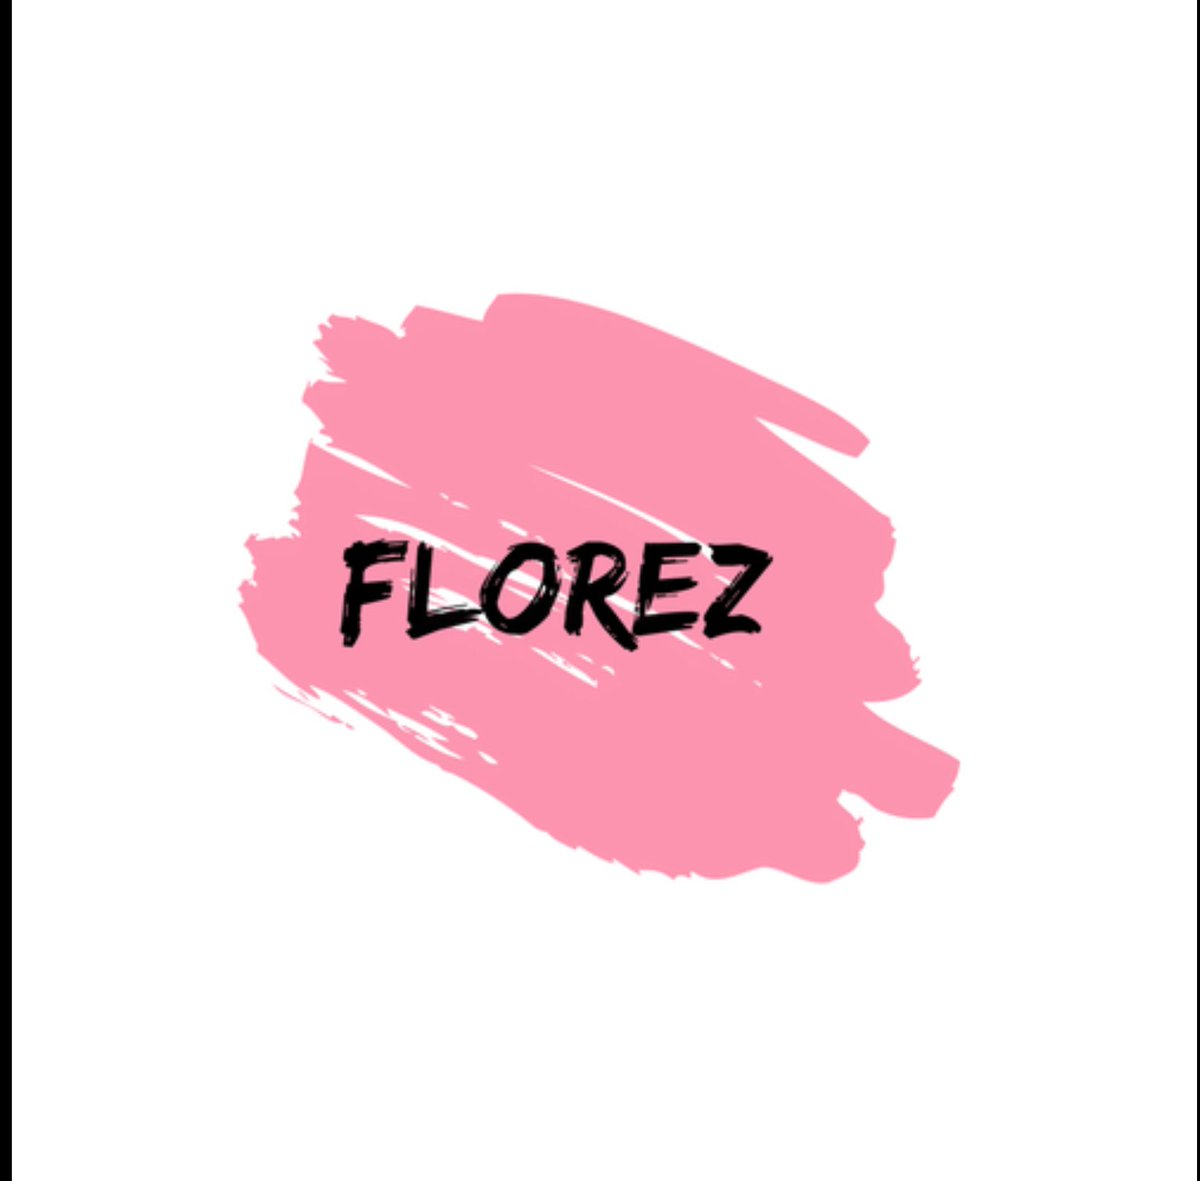 Hey Guys! This is the official twitter for Florez, a lifestyle blog founded by Assou Kone! Florez promotes female empowerment, entrepreneurship, and social development (focusing on disenfranchised communities). We are very excited to be on Twitter and stay on the lookout. https://t.co/qx6GB452Mf